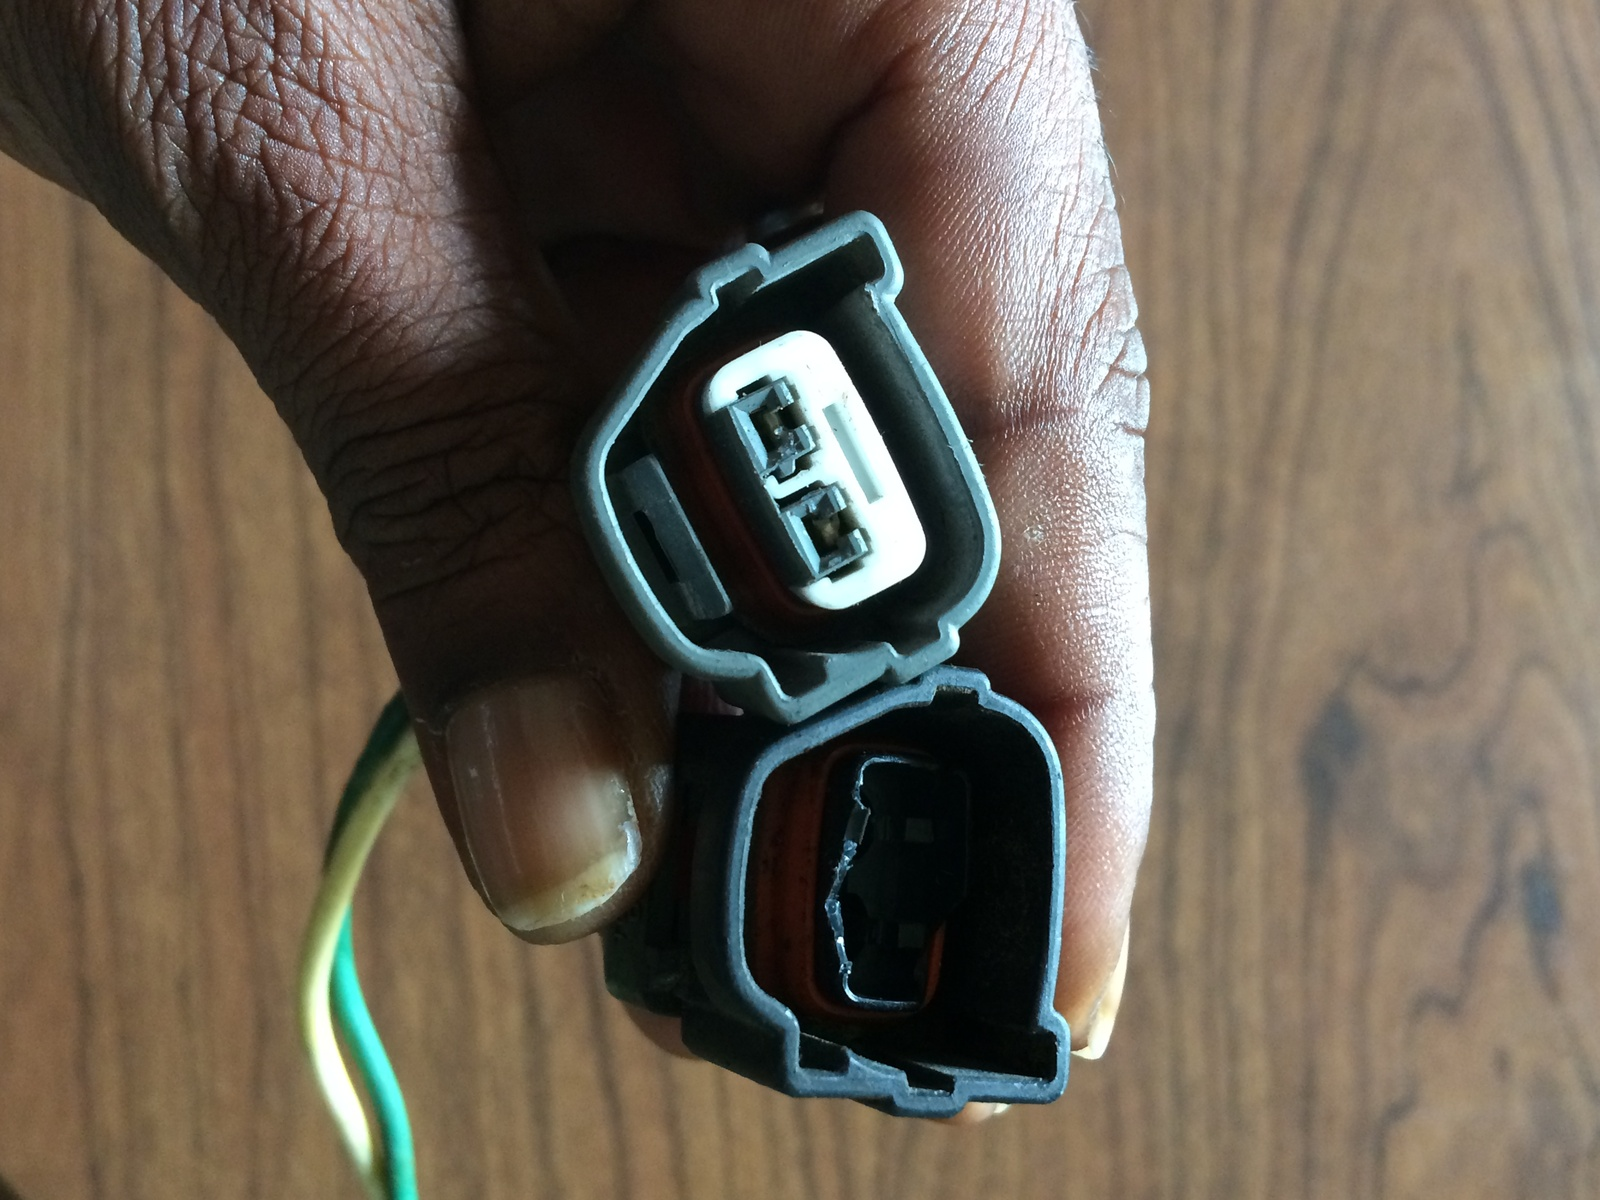 Hyundai Elantra Questions Where Can I Find An Engine Wiring Harness Adapter Additionally Nissan Car Audio He Is Going To Attempt Make A Pigtail Am Just Concerned That My Will Catch On Fire What Do You Think Cannot The Black One